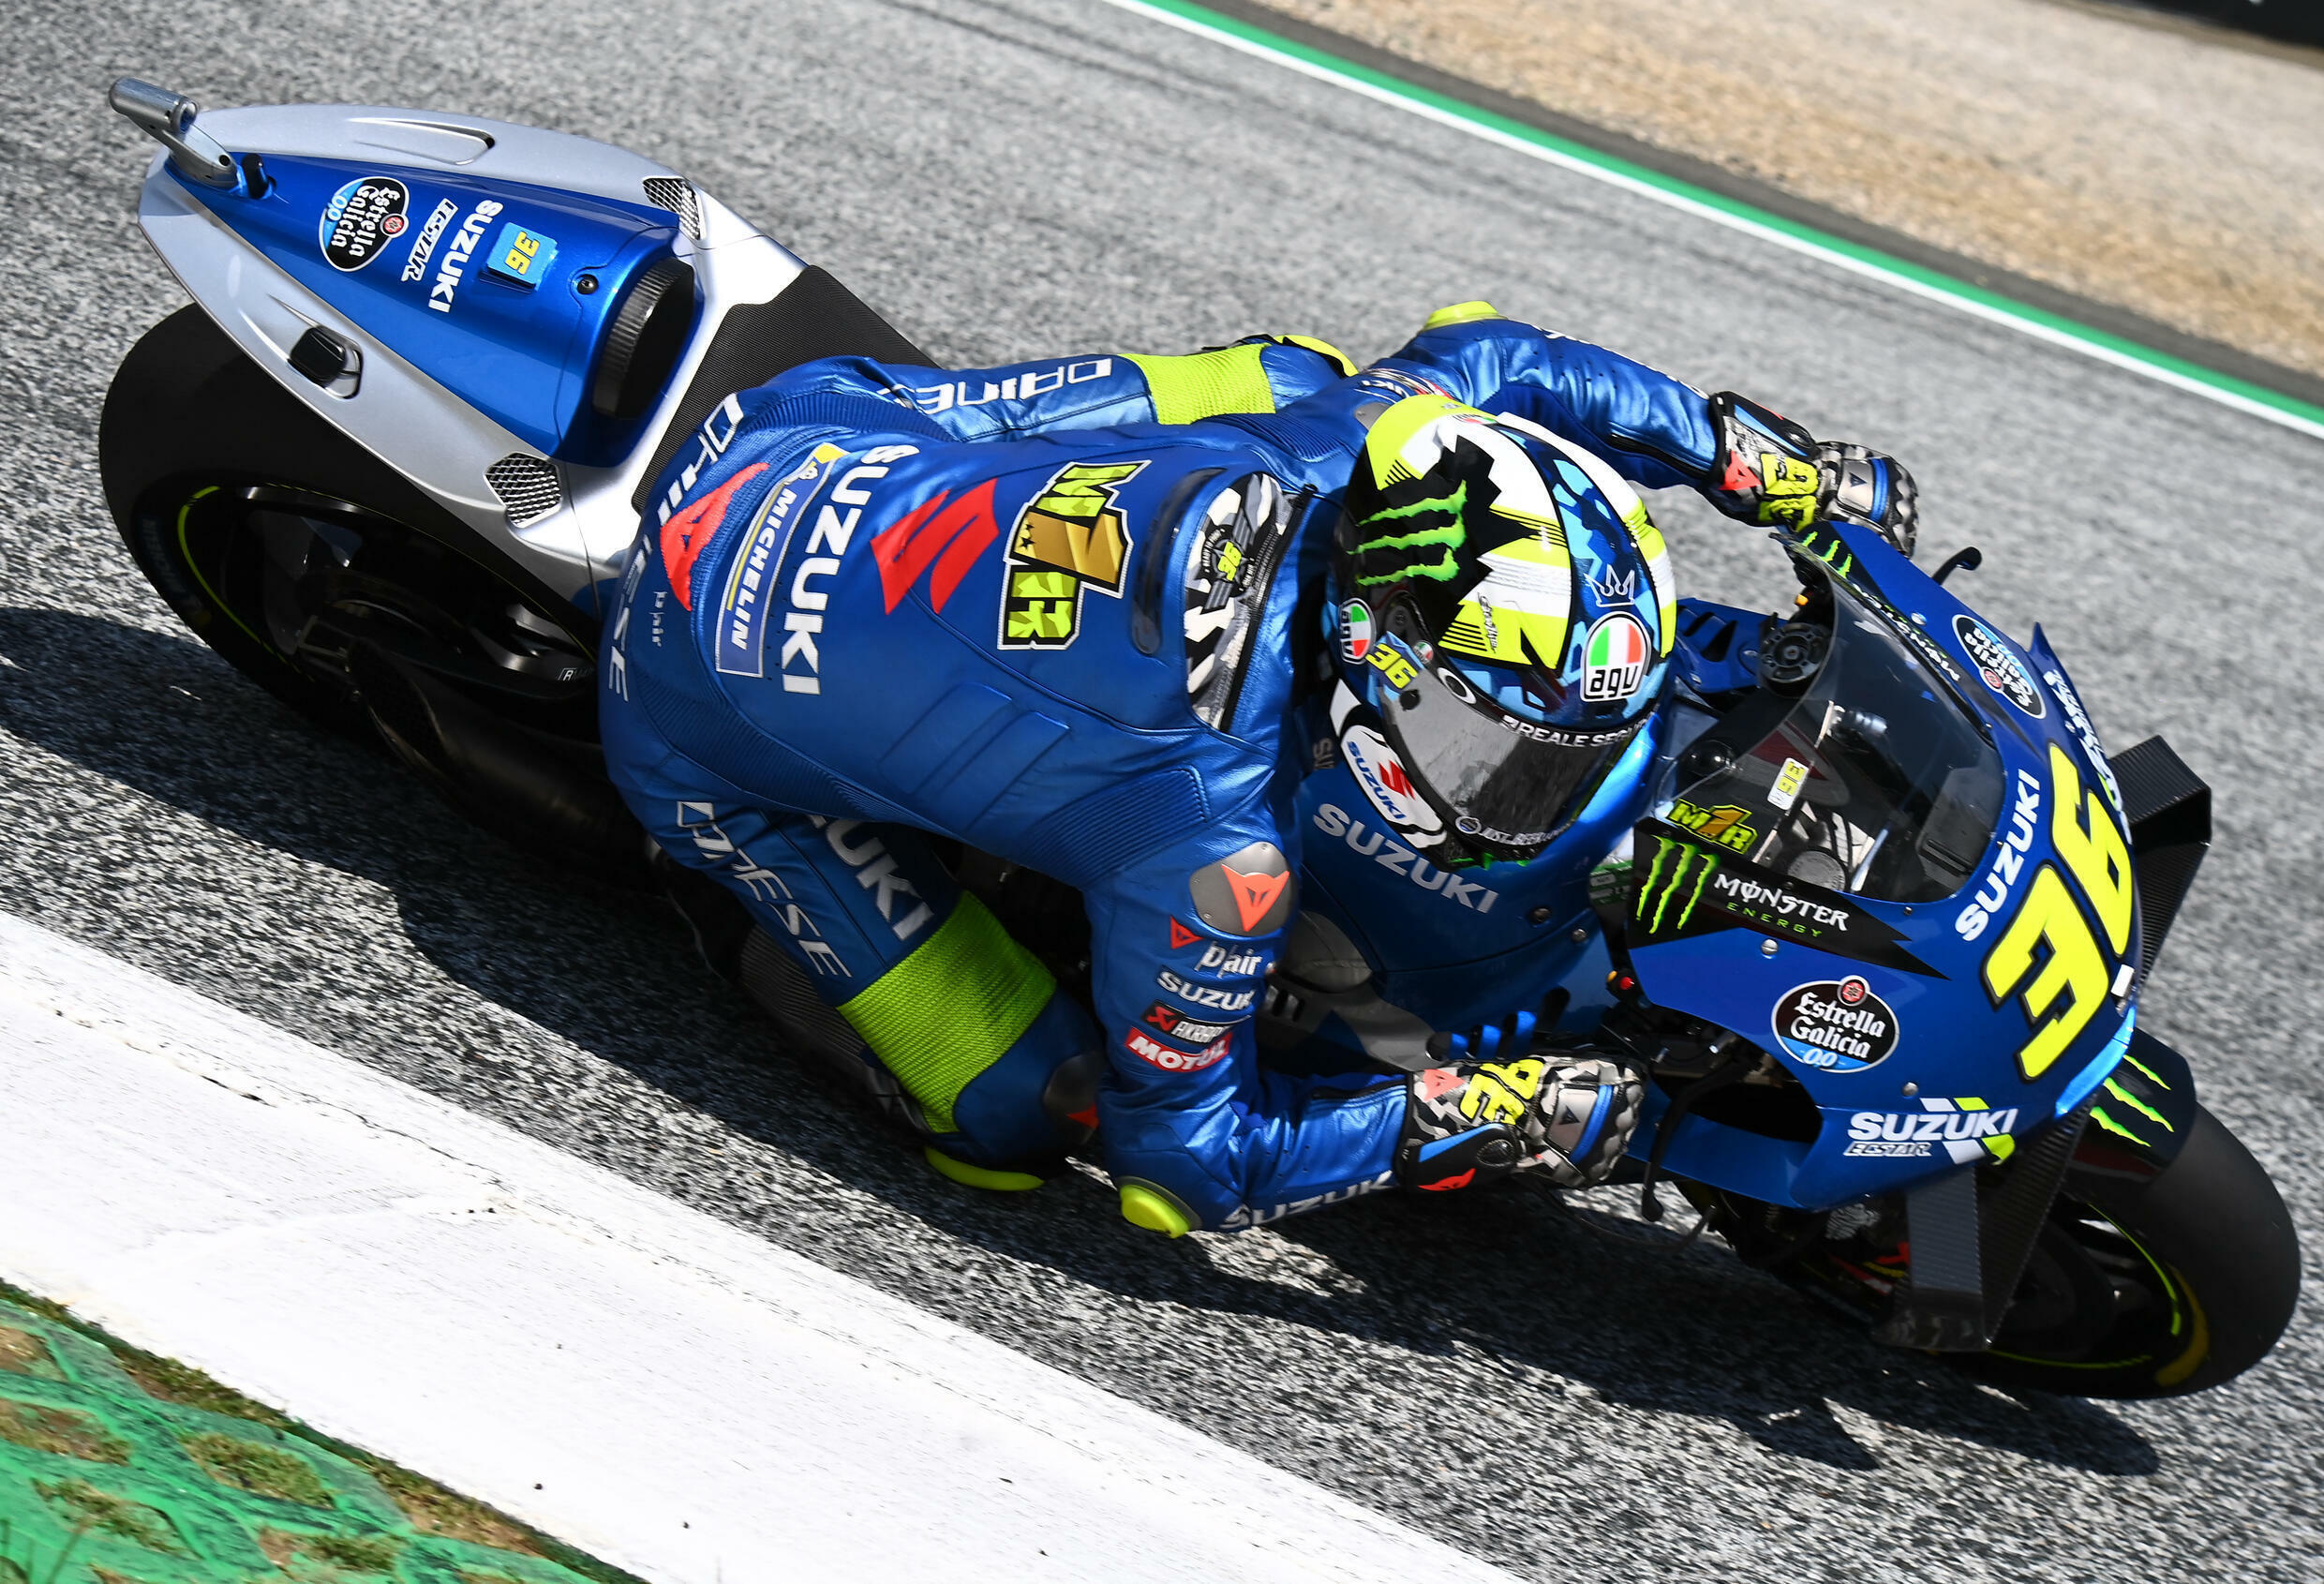 Spanish rider Joan Mir, rides in his Suzuki, during qualifying for the Austrian Grand Prix motorcycle race, August 14, 2021 at the Red Bull Circuit in Spielberg.